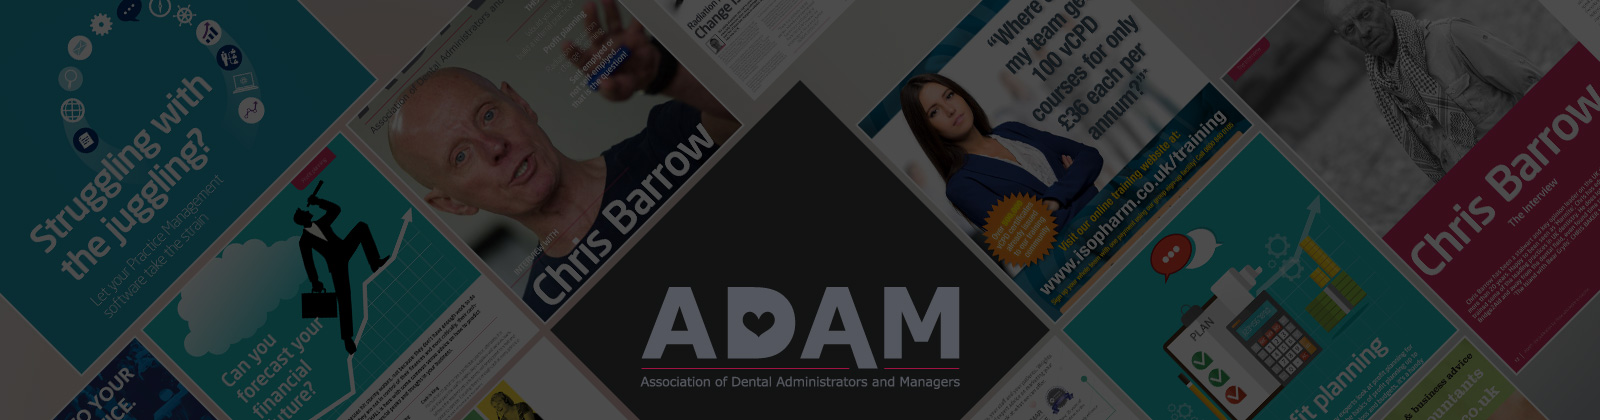 Reduce your ADAM membership subscription through Tax Relief